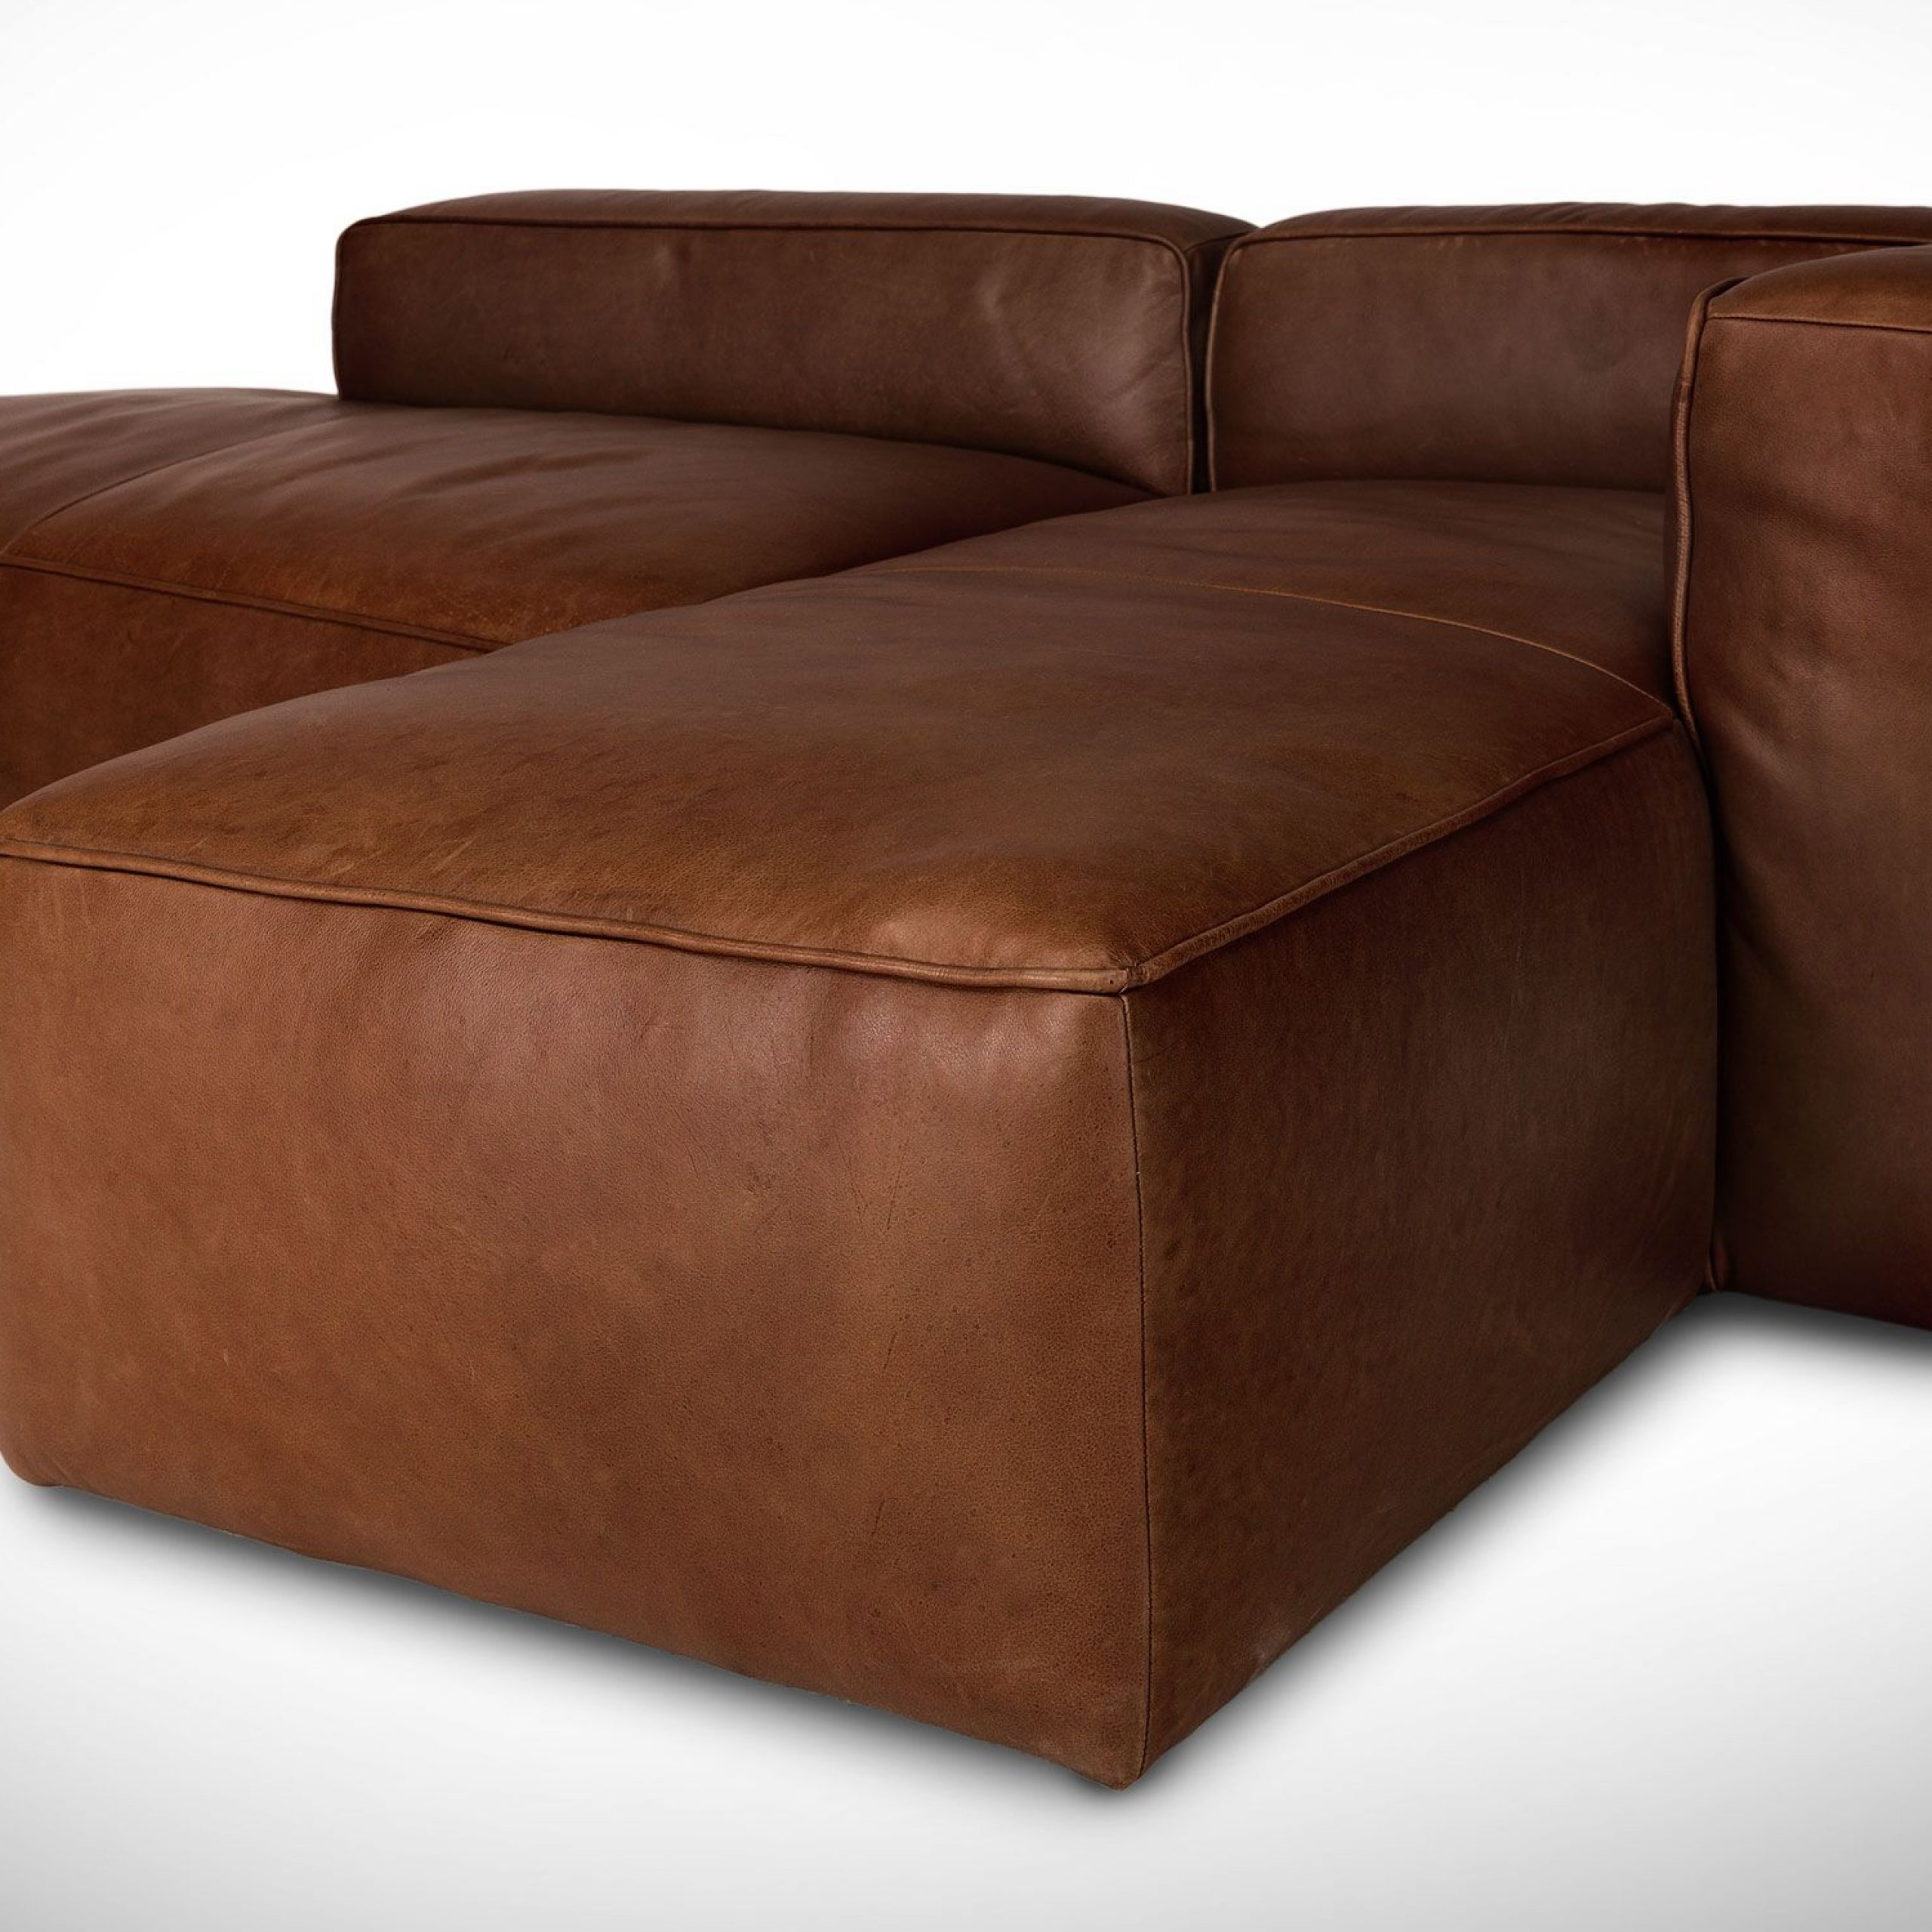 Florence Mid Century Modern Left Sectional Sofas Within Well Liked Mello Taos Brown Left Sectional – Sofas – Article (View 19 of 25)